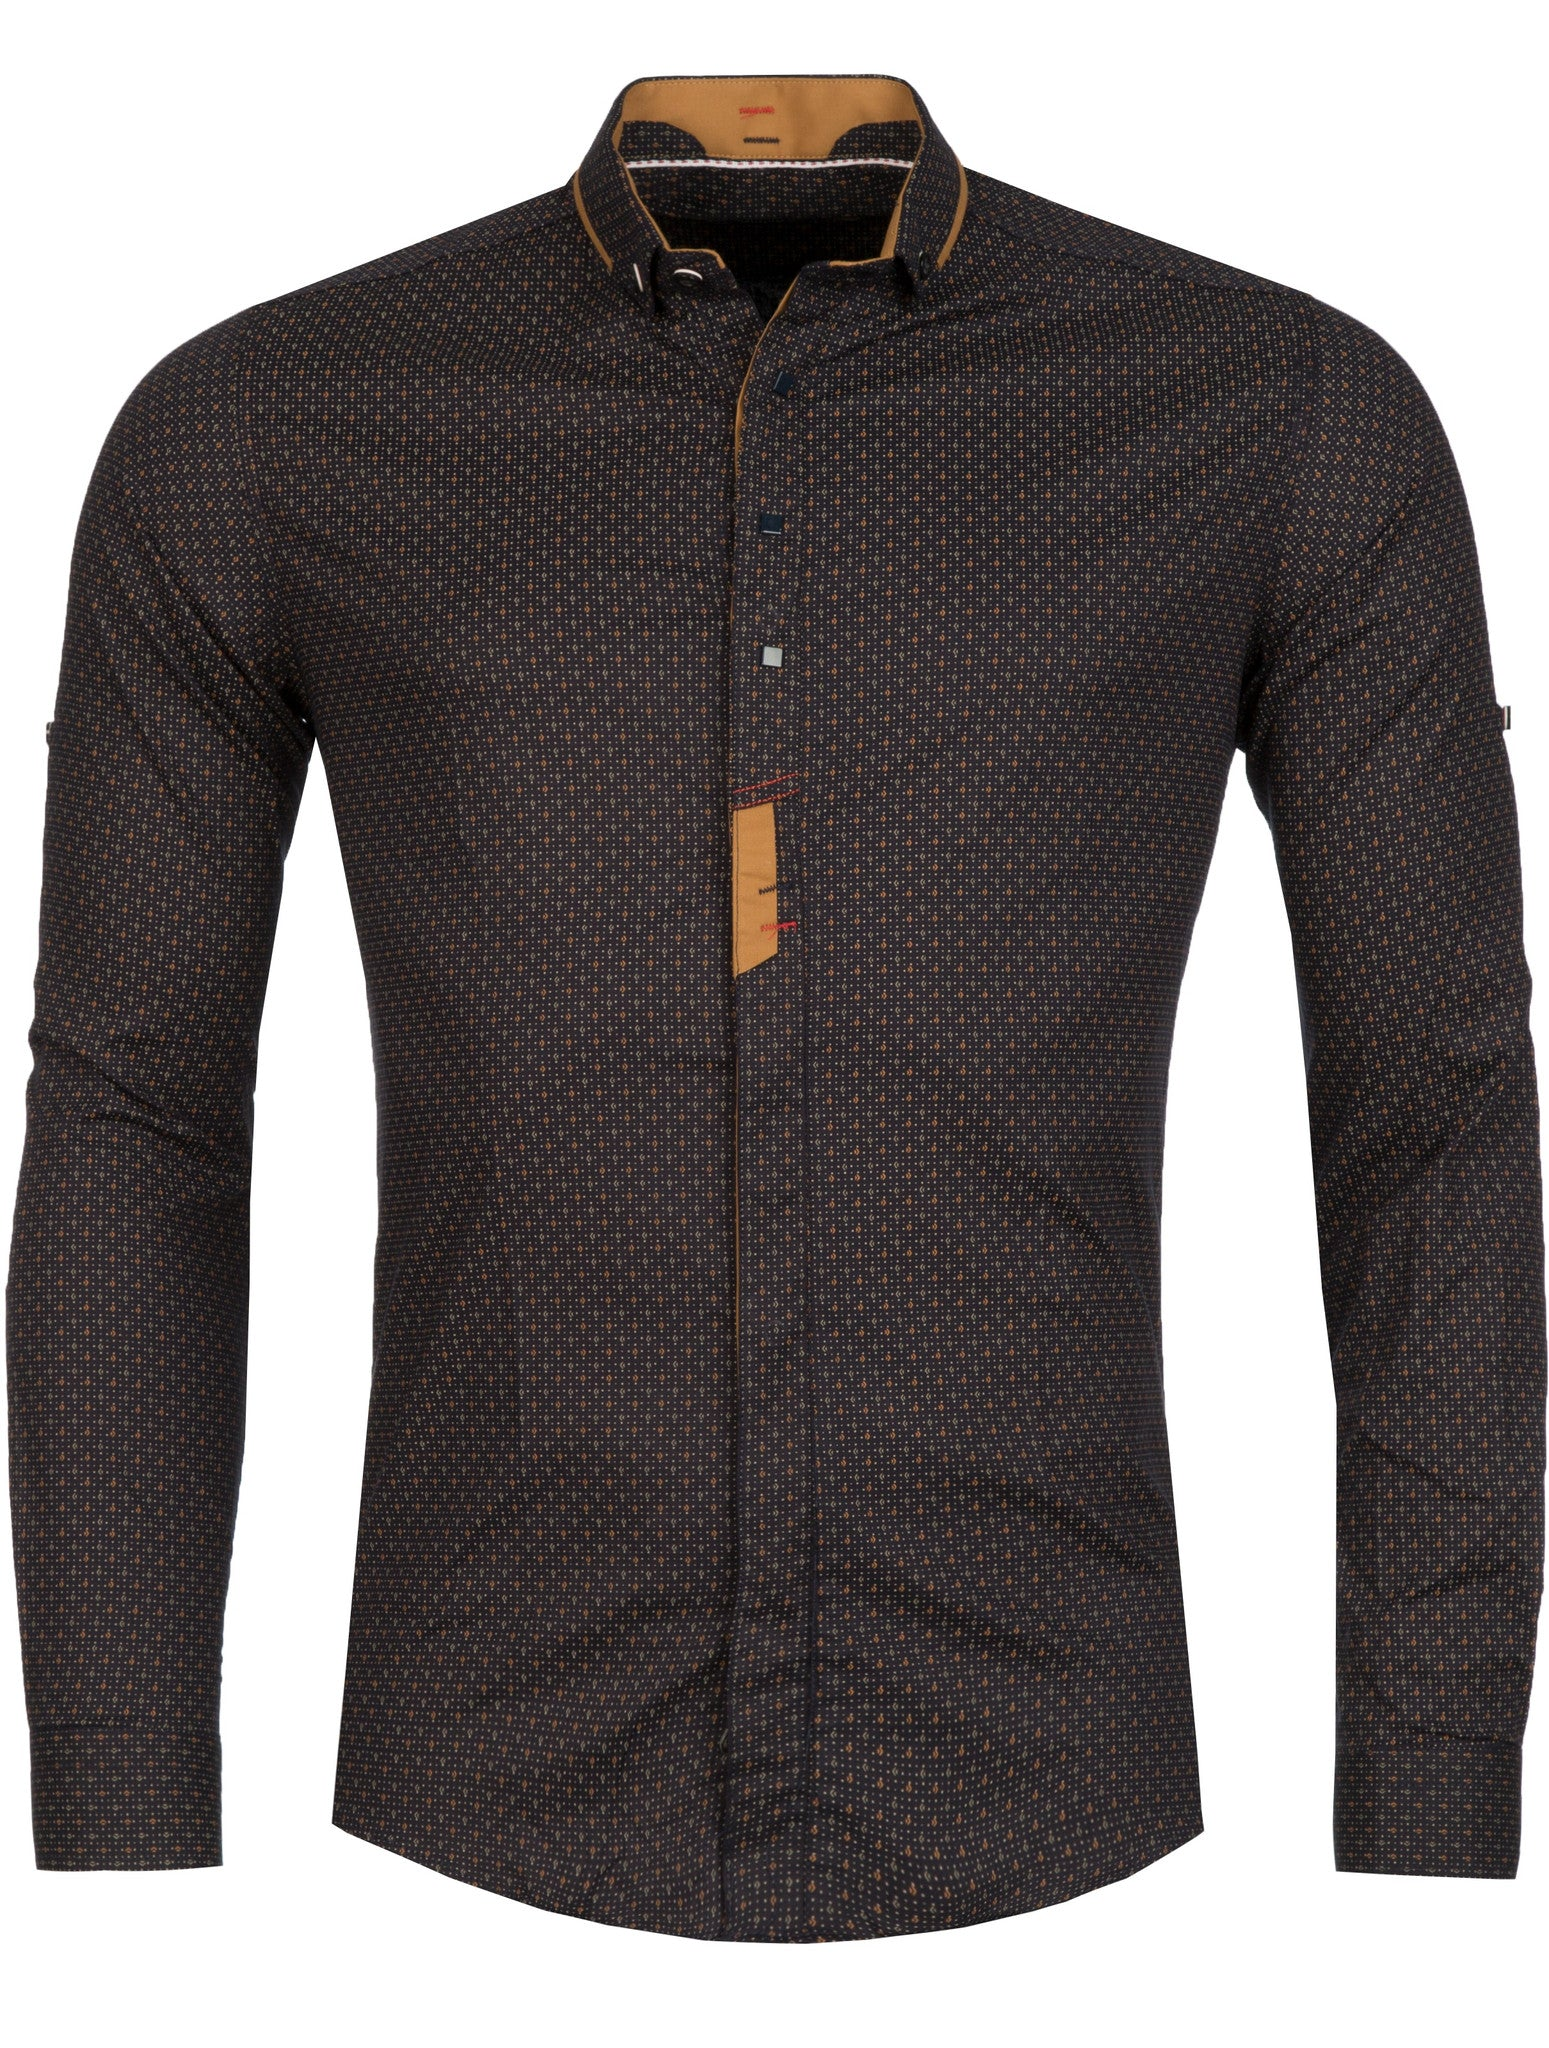 Y&R Men Casual Plane Button Up L/S Shirt - Navy / Brown